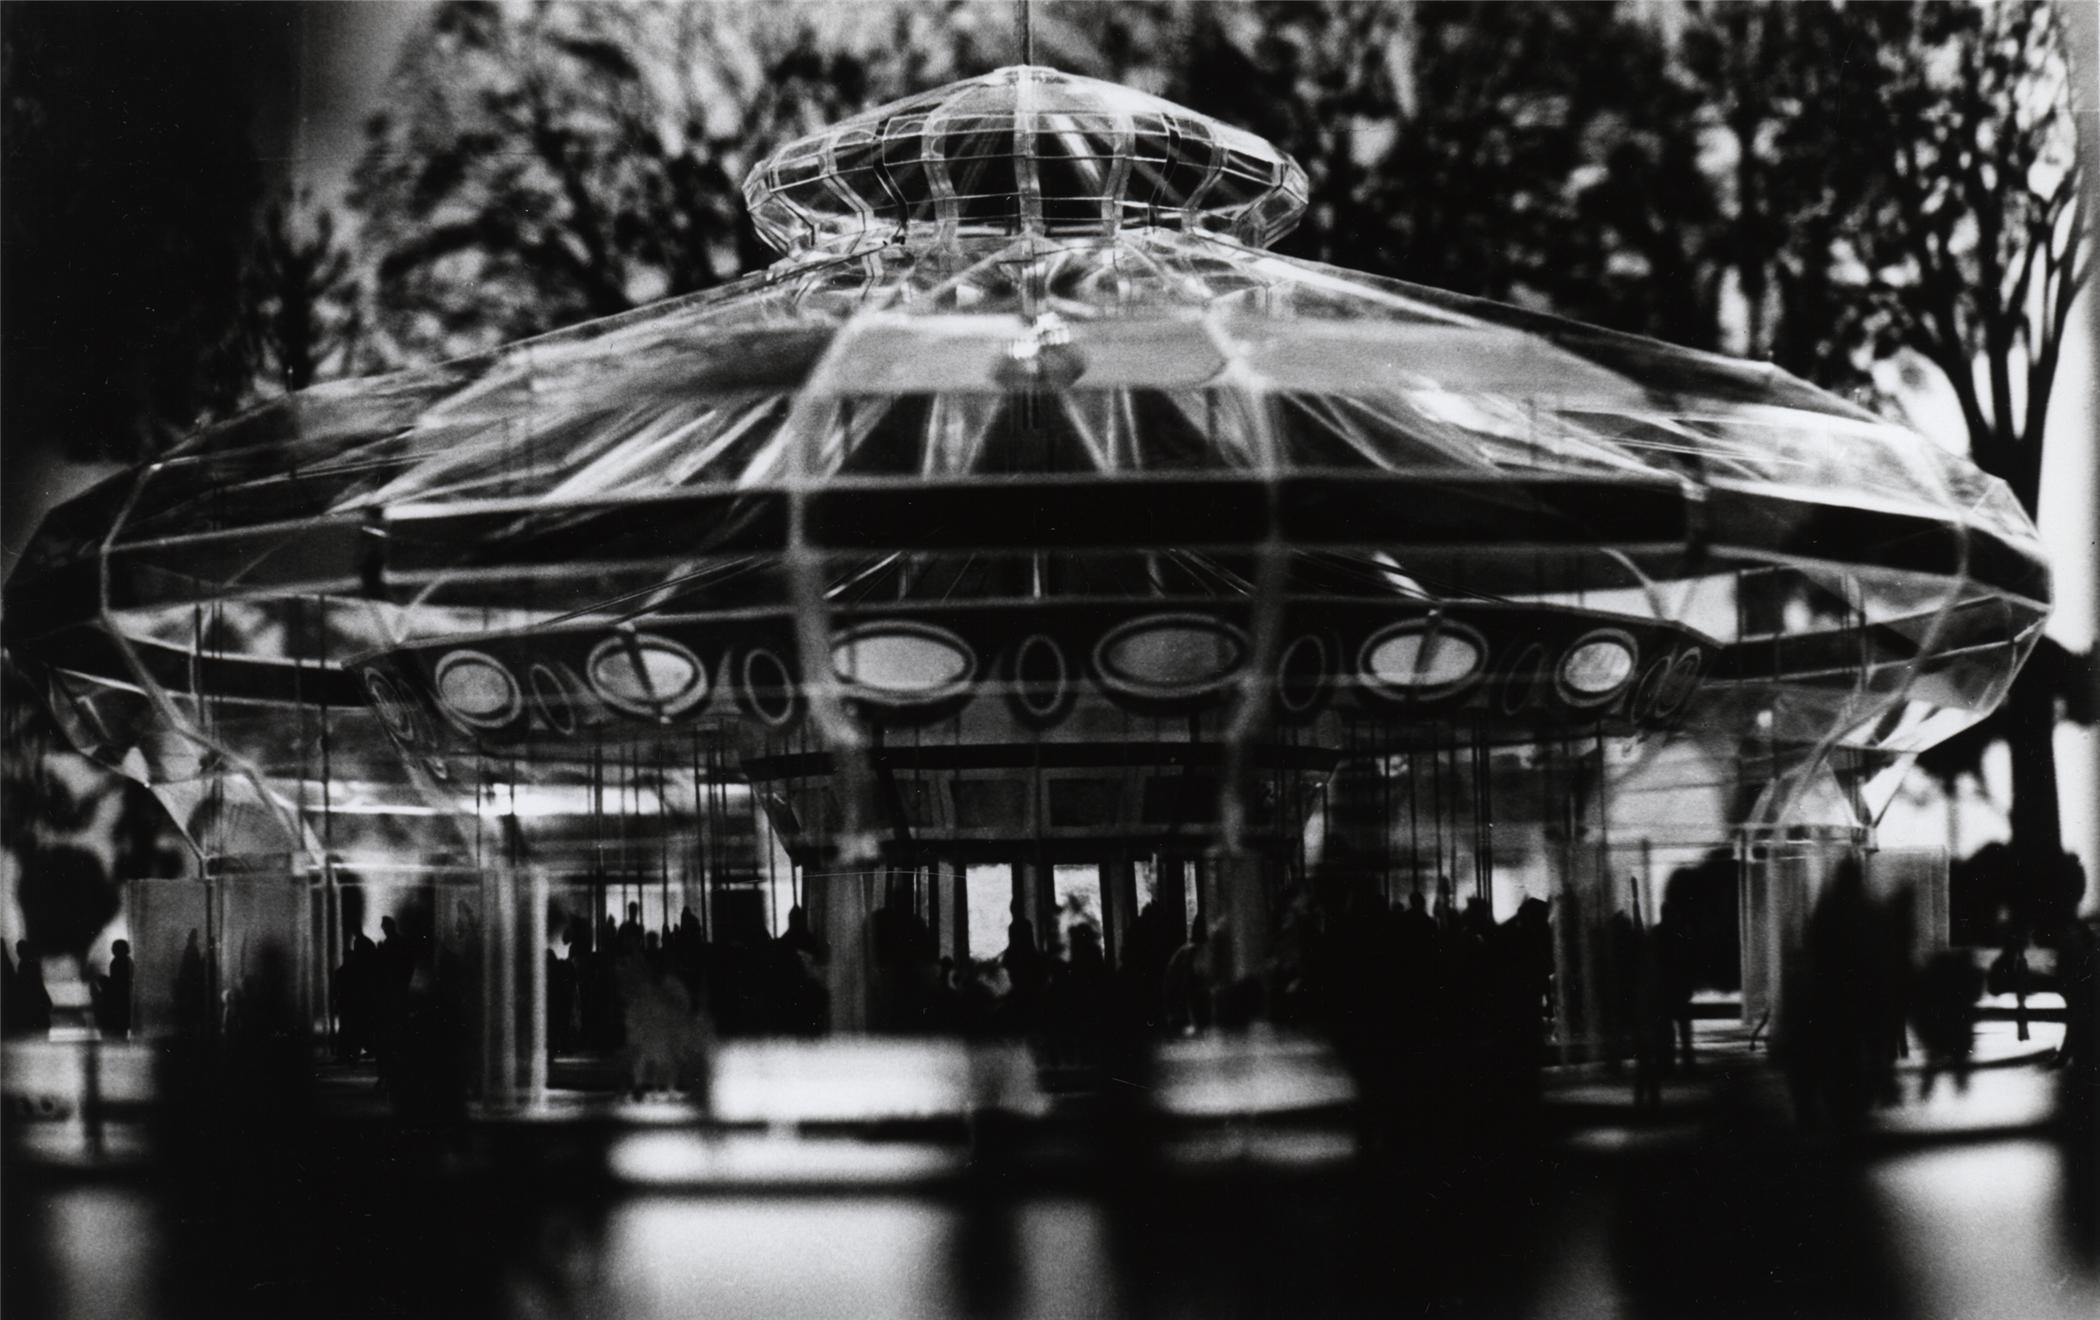 Charles Eames carousel pavilion model, Smithsonian Institution Archives, neg. no. 2002-2214.